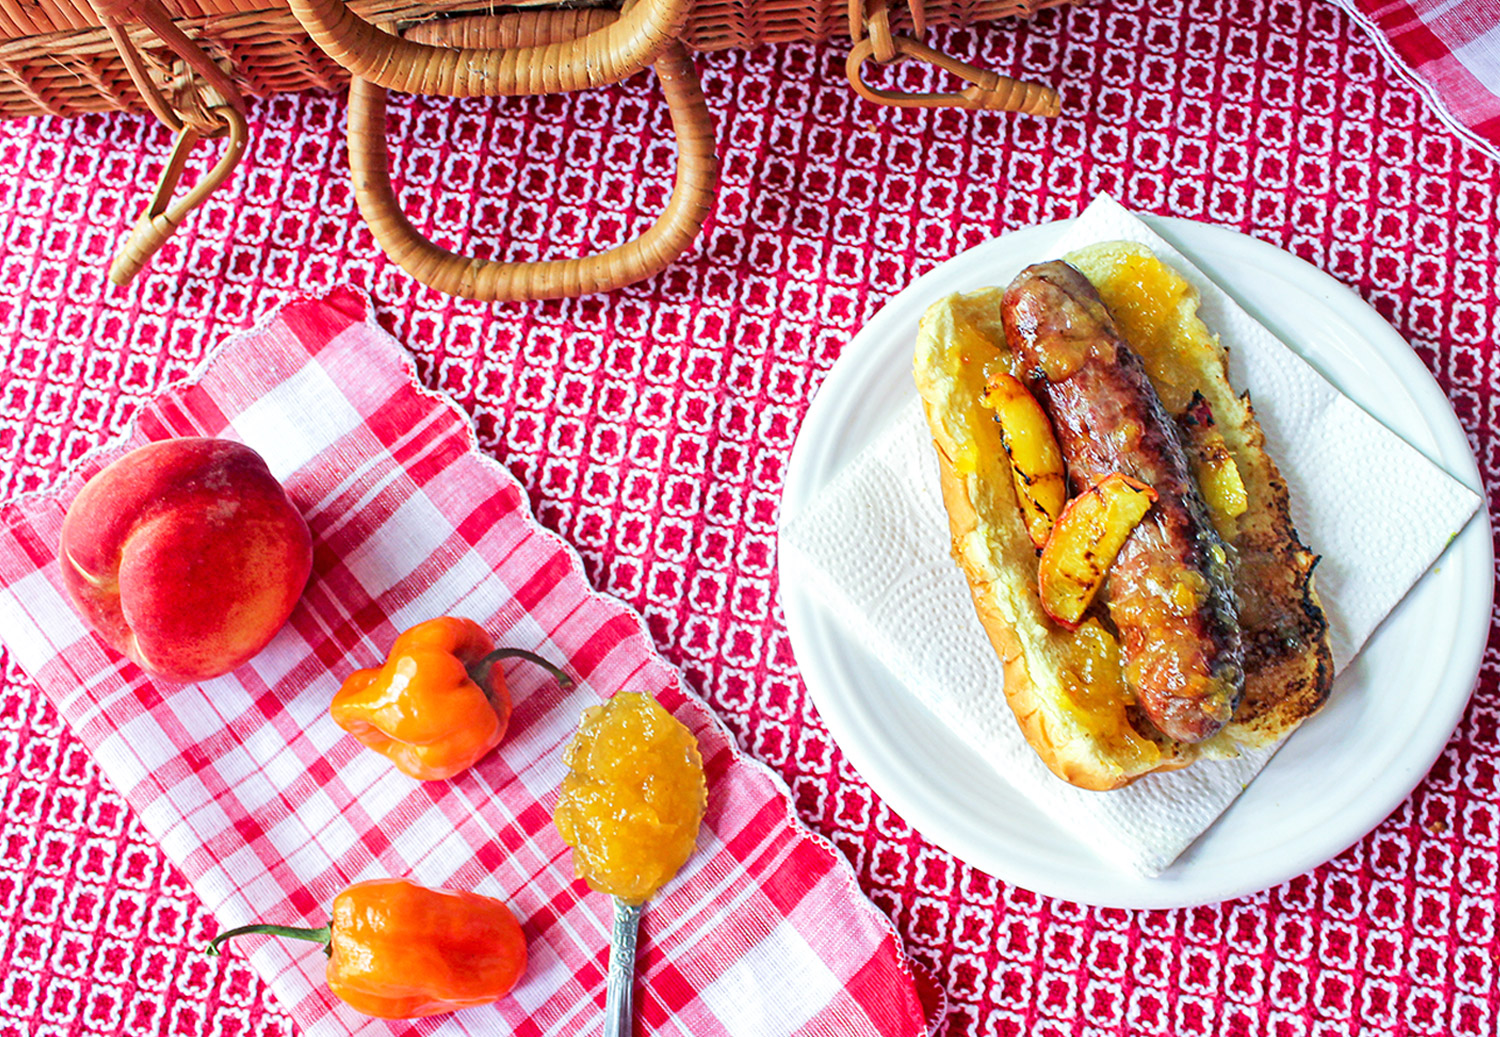 Hot dog with peach habanero jam and grilled peaches